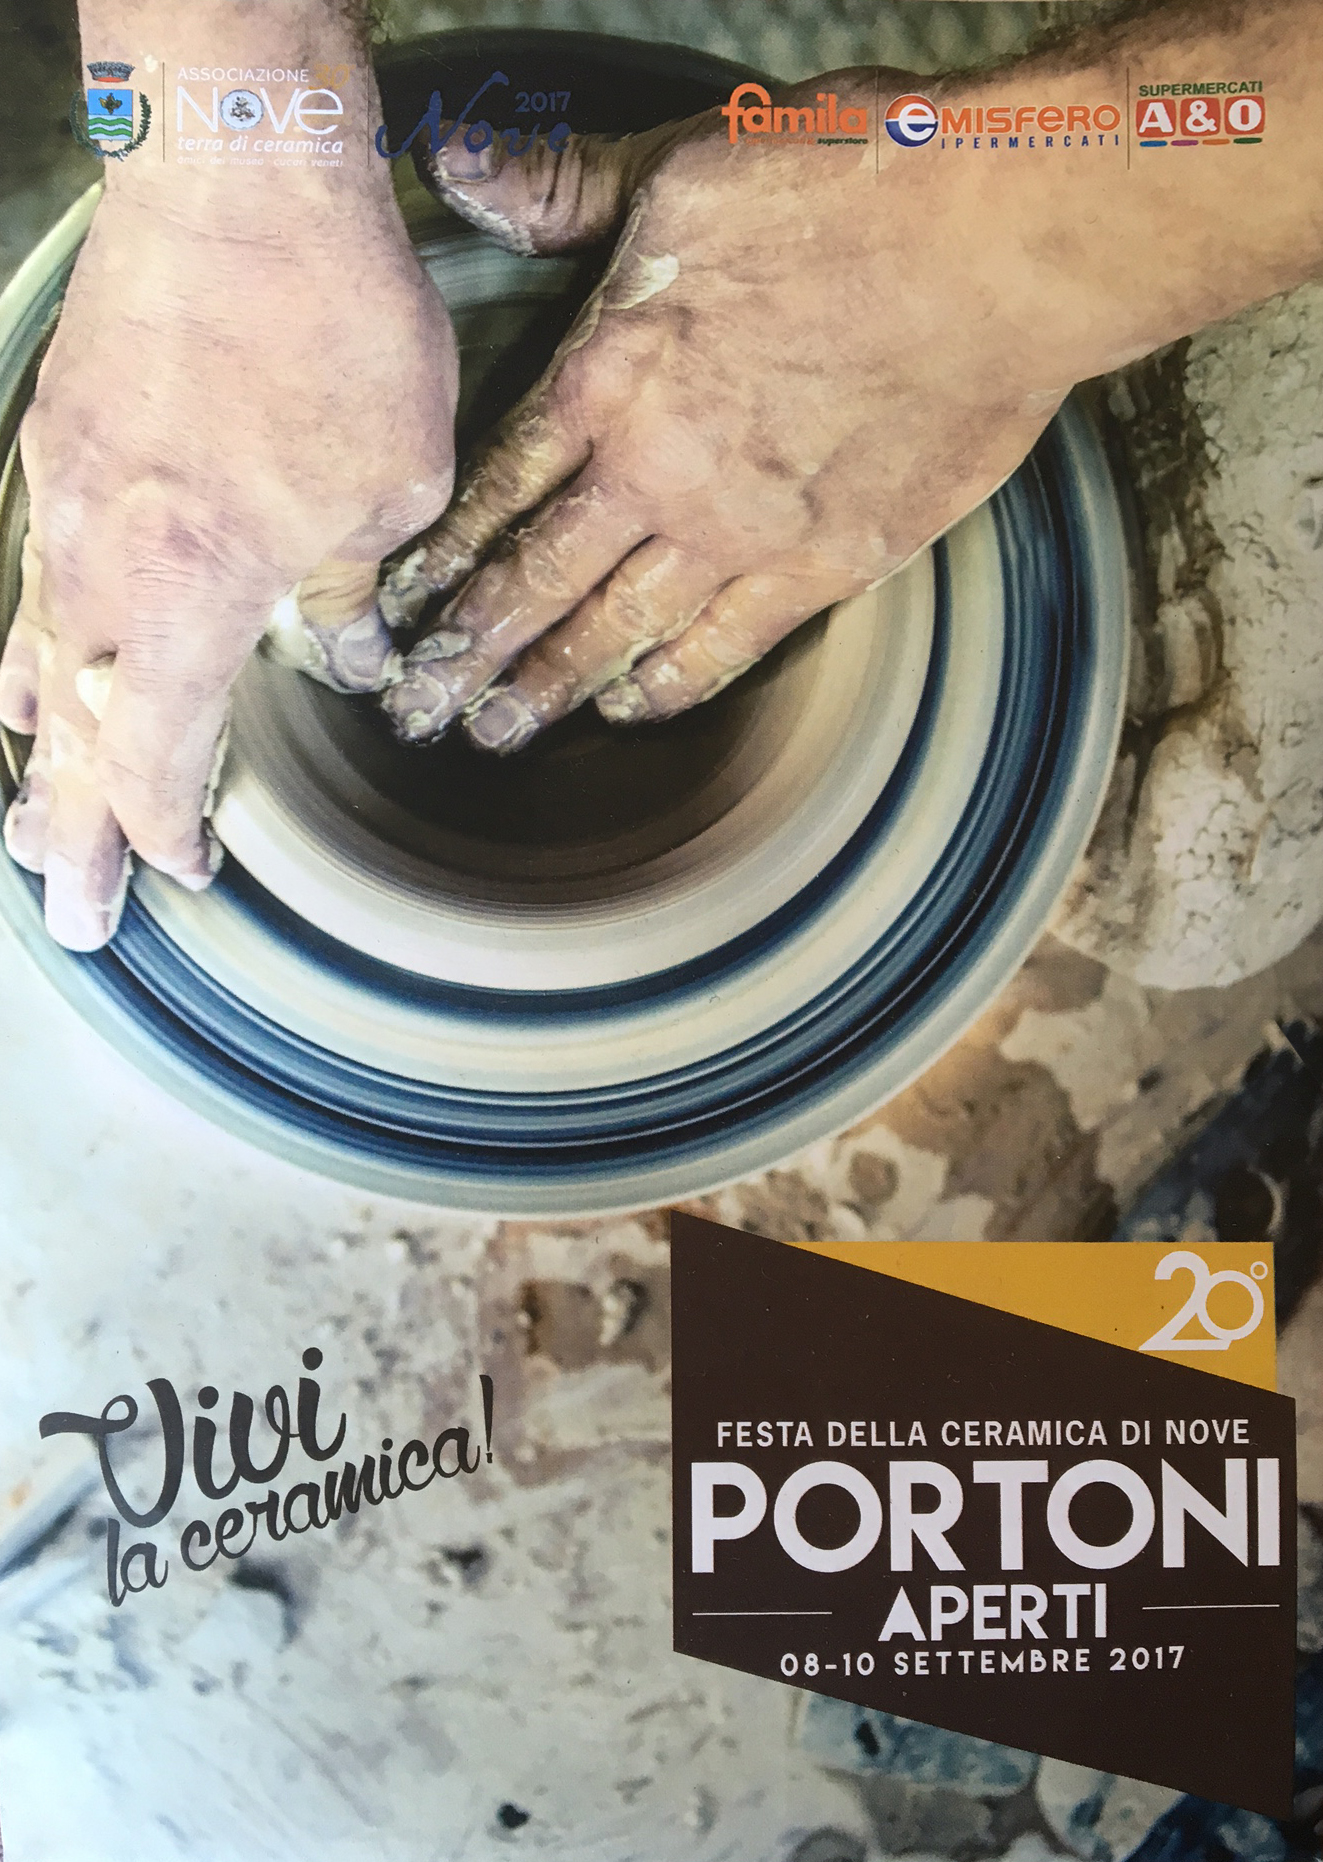 PORTONI APERTI (Open Doors) - CERAMIC FESTIVALOF NOVE · XX EDITIONSEPTEMBER 8—10, 2017 NOVE (VI)READ OUR BLOG